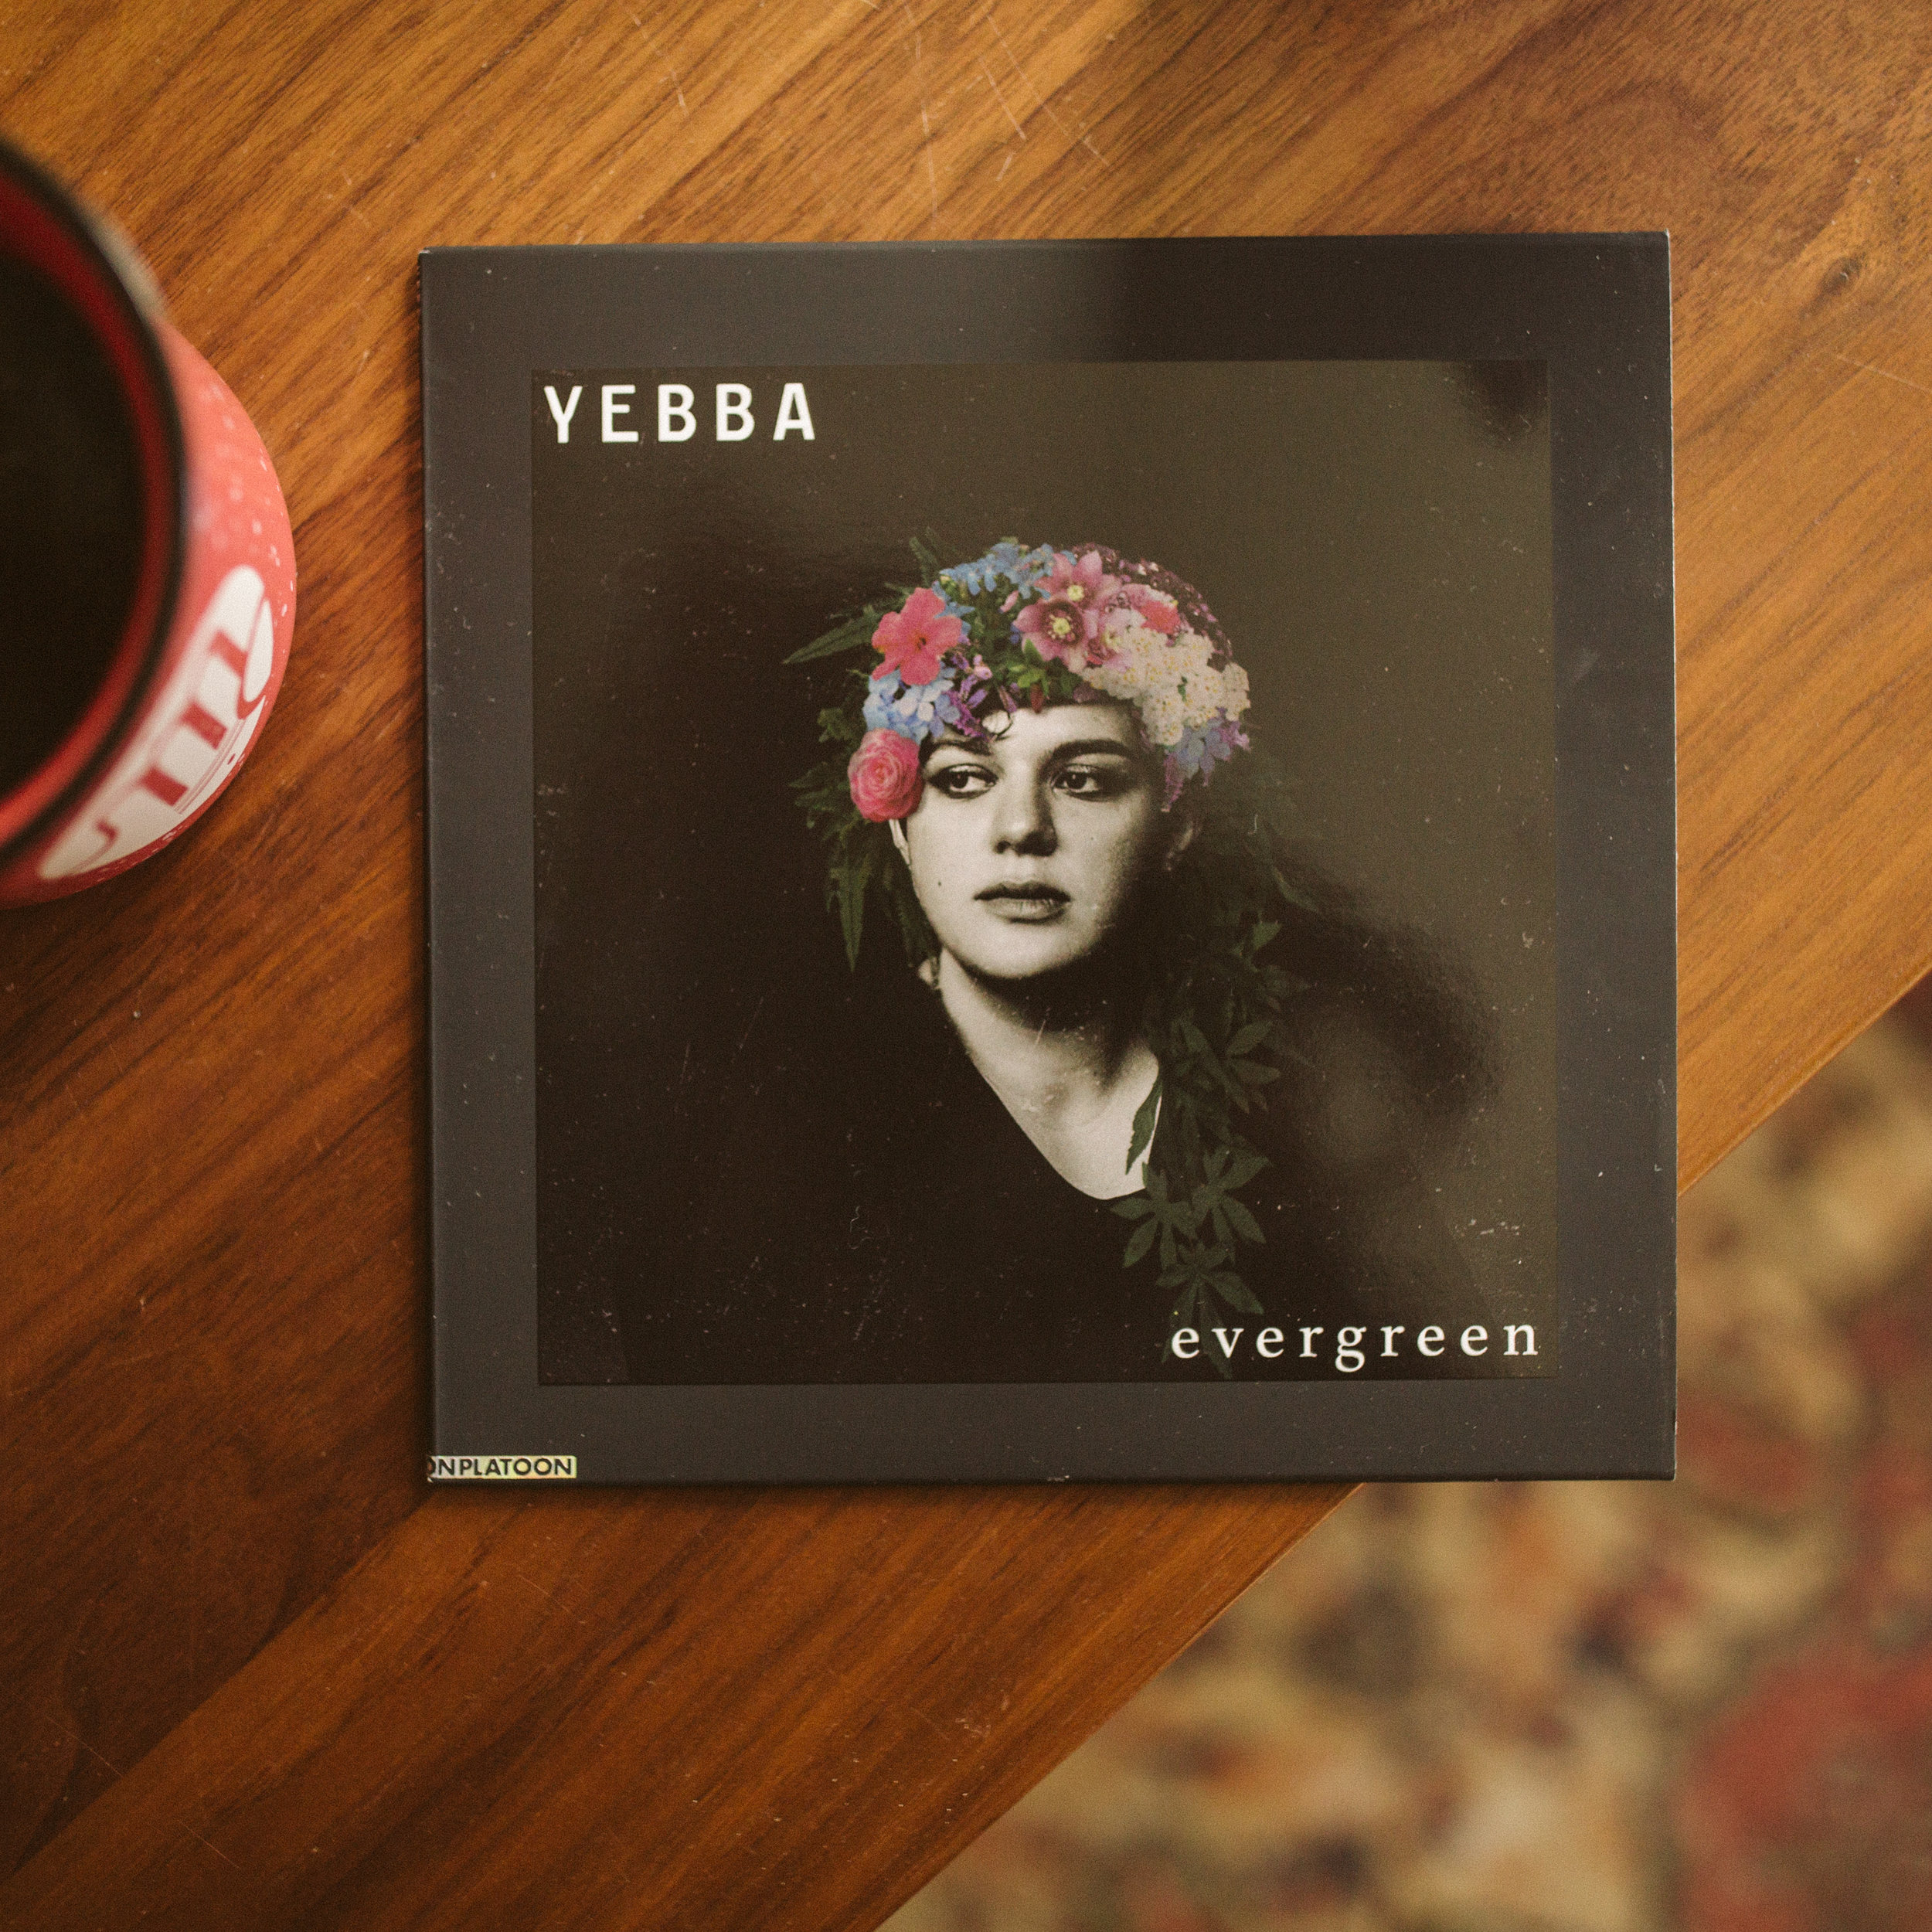 Yebba is one of my absolute favorite vocalists and I can't wait for the impending album. For now, we have one main single and if you spring for this LP, an exclusive special acoustic version that I've had on repeat for awhile.  Listen on   Apple Music   or   Spotify  .  Bonus: Watch the amazing exclusive Apple Music music video (with unique vocals)   here  .